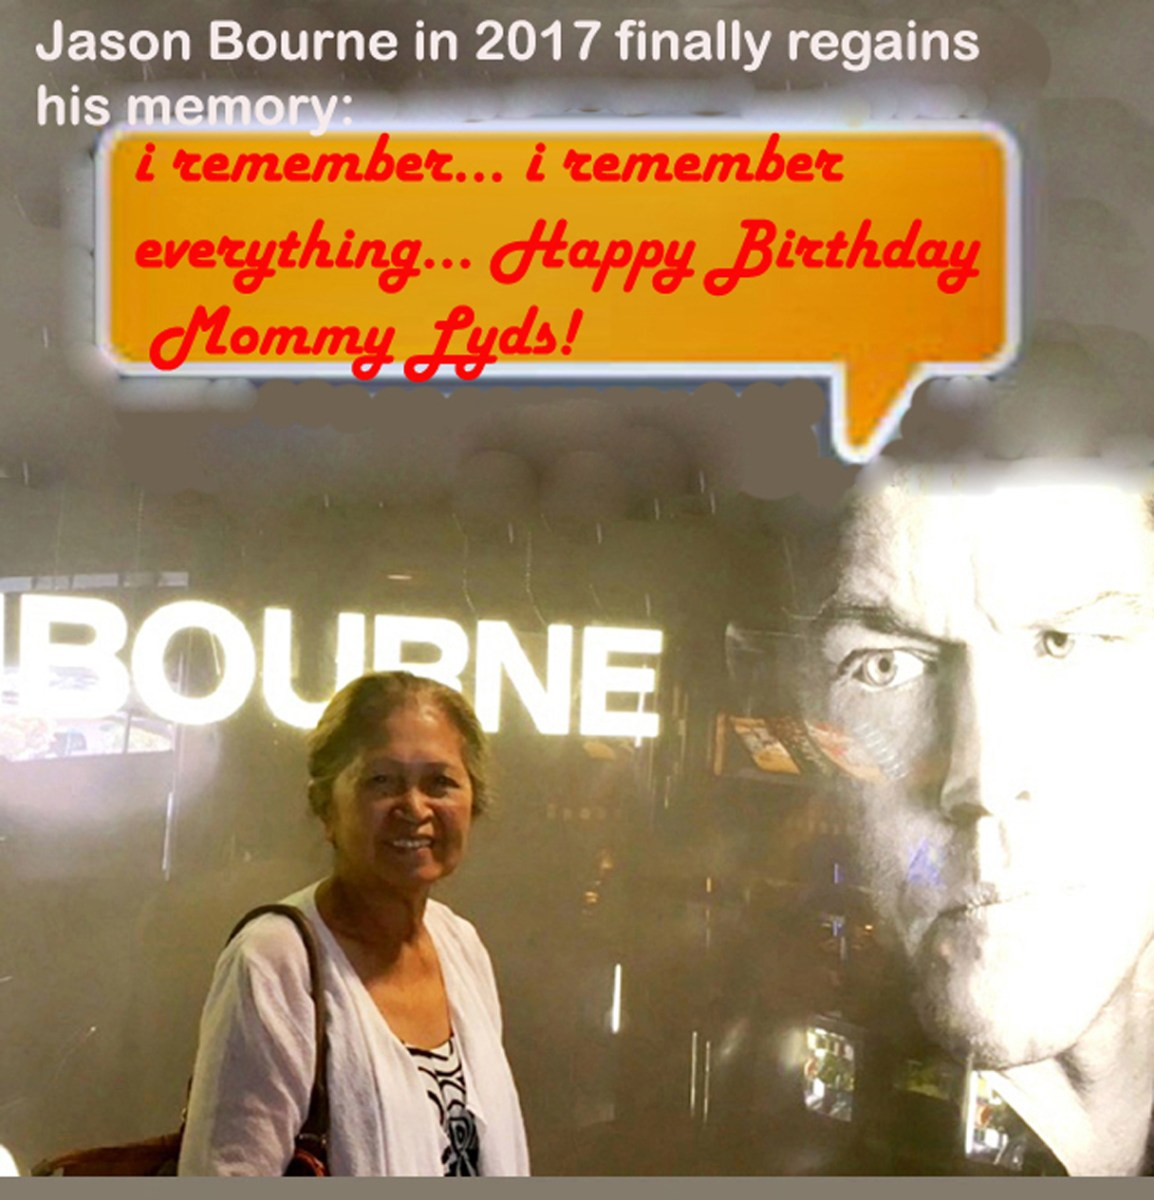 20 Happy Birthday Jason Bourne Meme Pictures And Ideas On Meta Networks